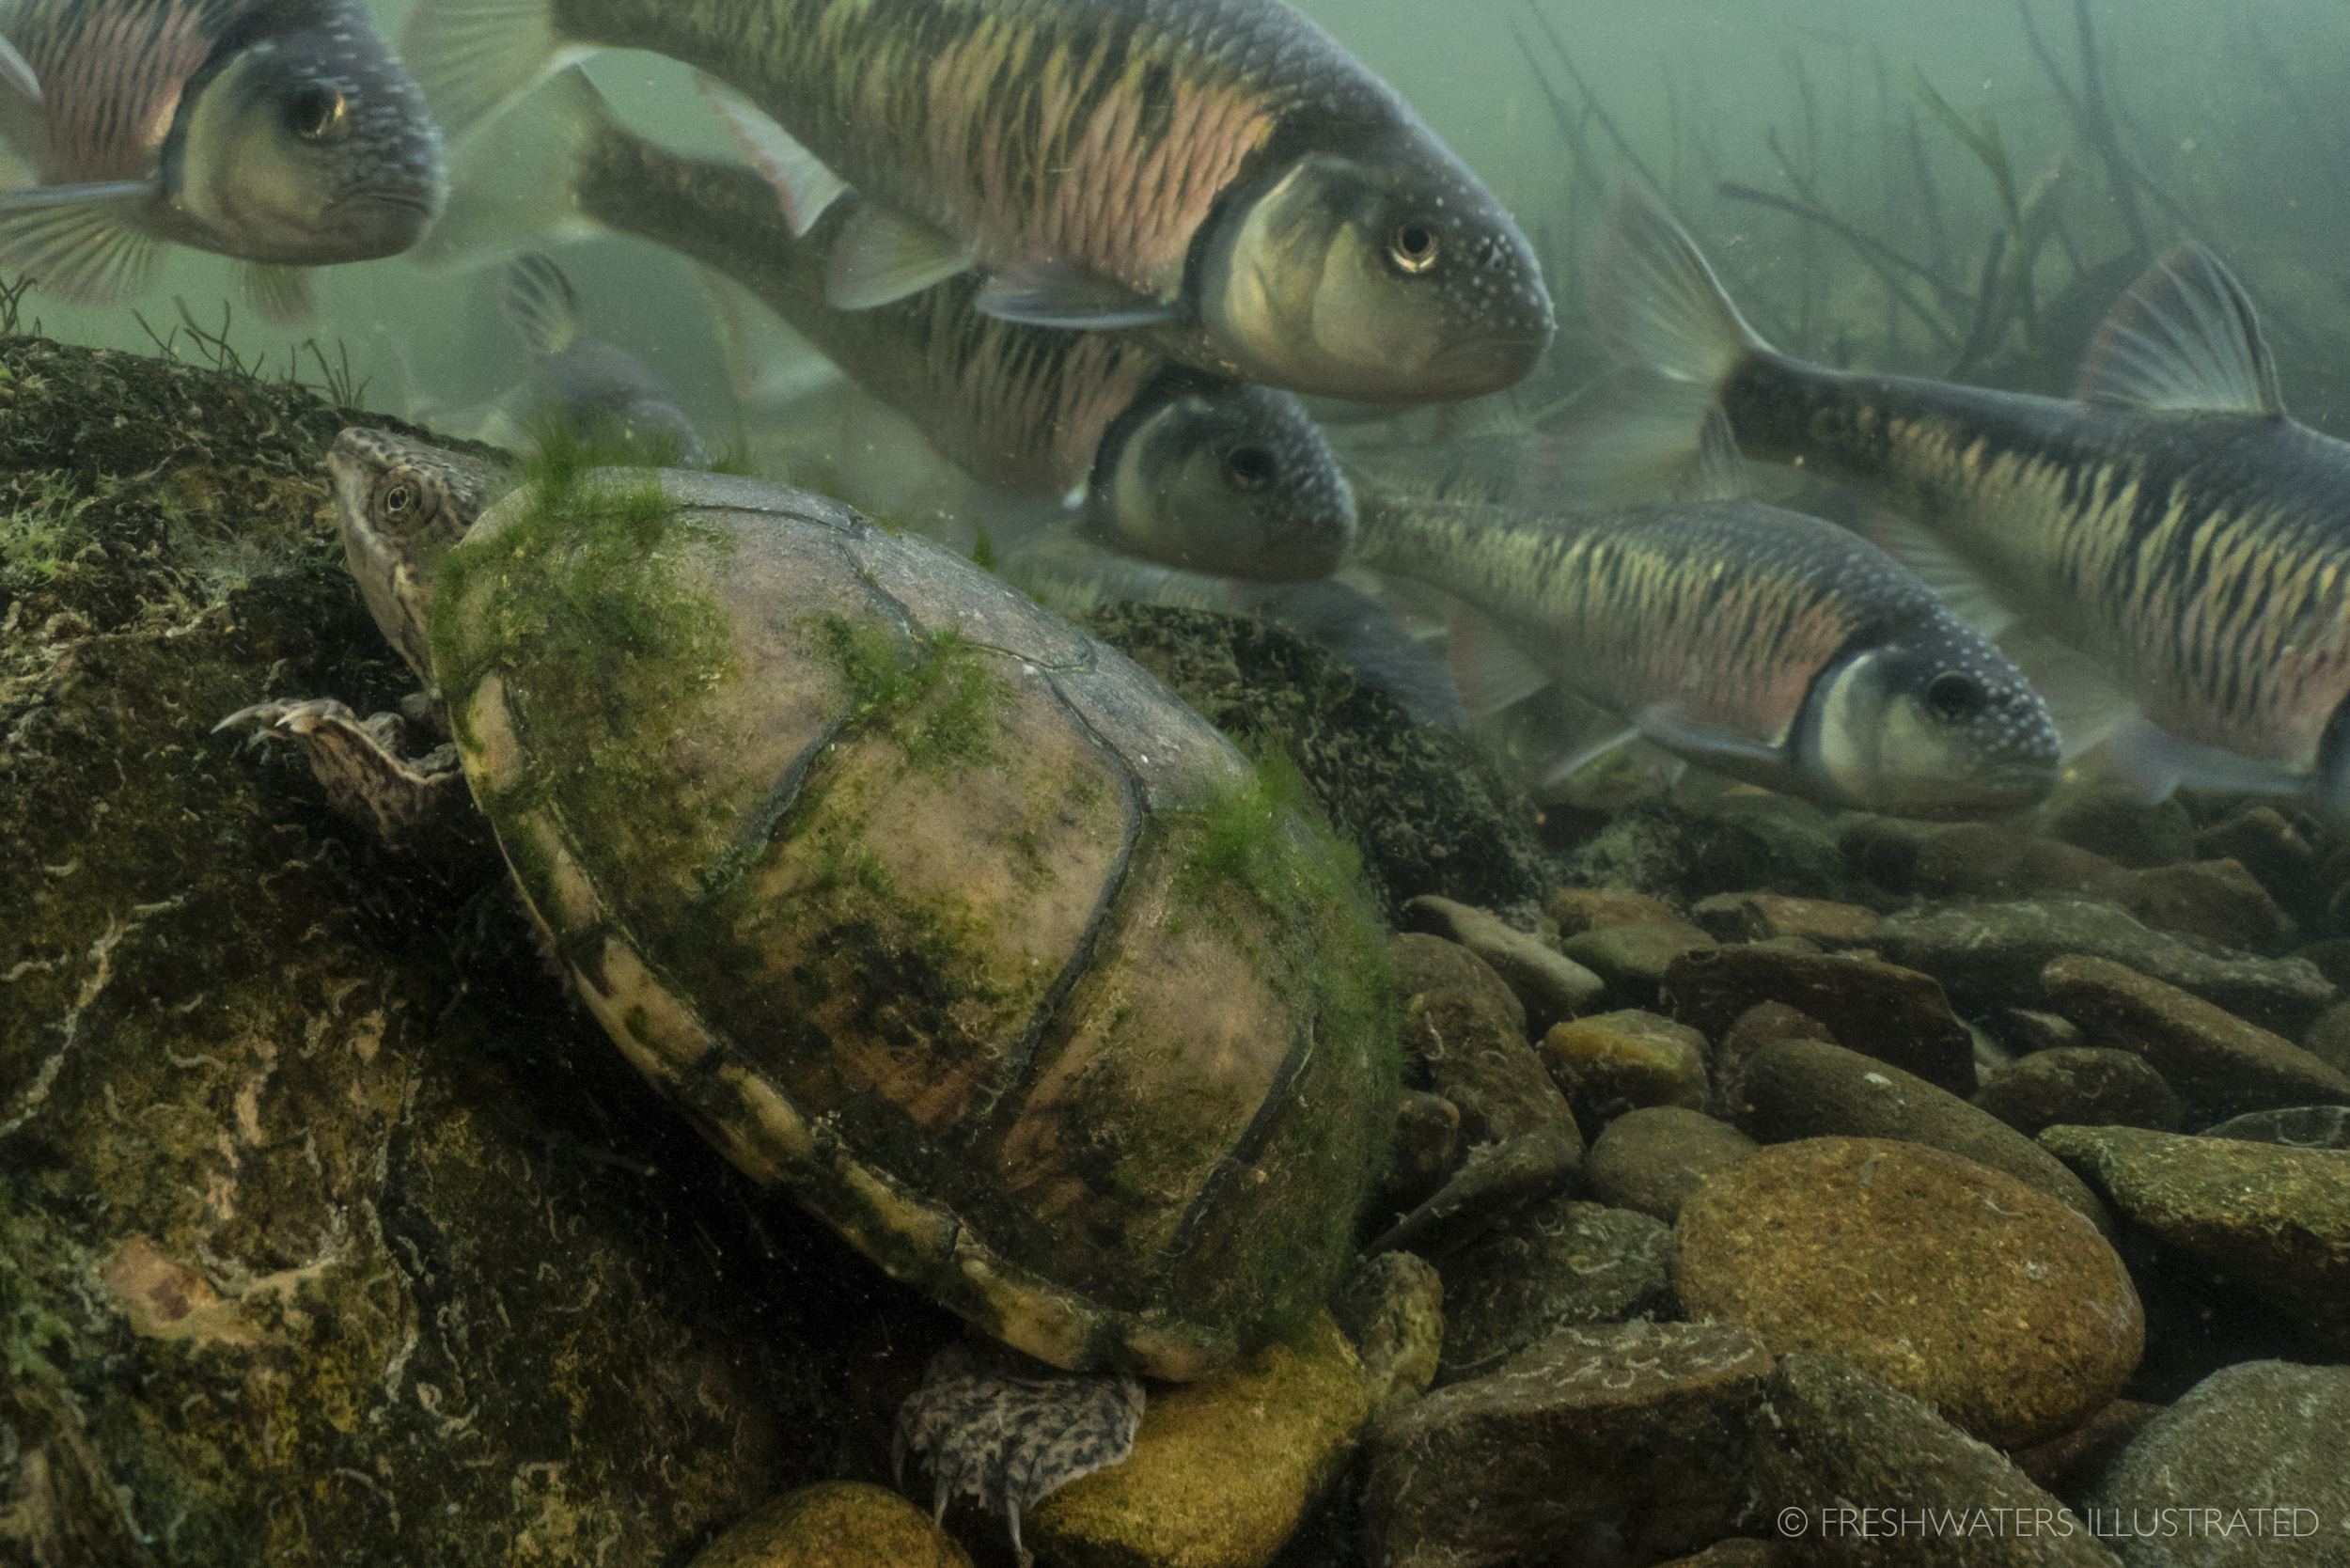 A curious musk turtle (Sternotherus odoratus) sneaks past a school of spawning striped shiners (Luxilus chrysocephalus). Little River, Tennessee  www.FreshwatersIllustrated.org